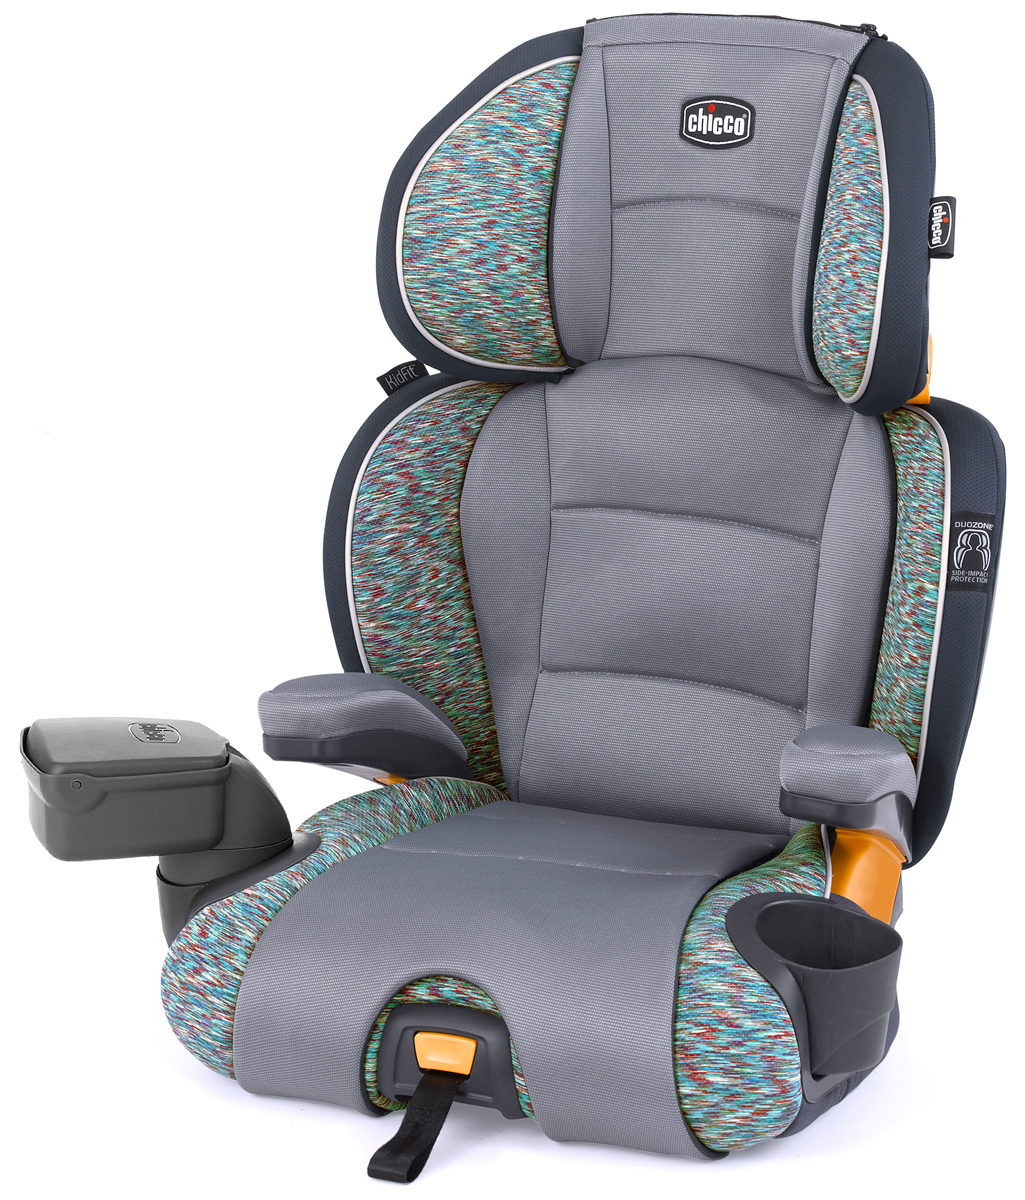 Terrific Chicco Kidfit Zip 2 In 1 Belt Positioning Booster Car Seat Privata Andrewgaddart Wooden Chair Designs For Living Room Andrewgaddartcom